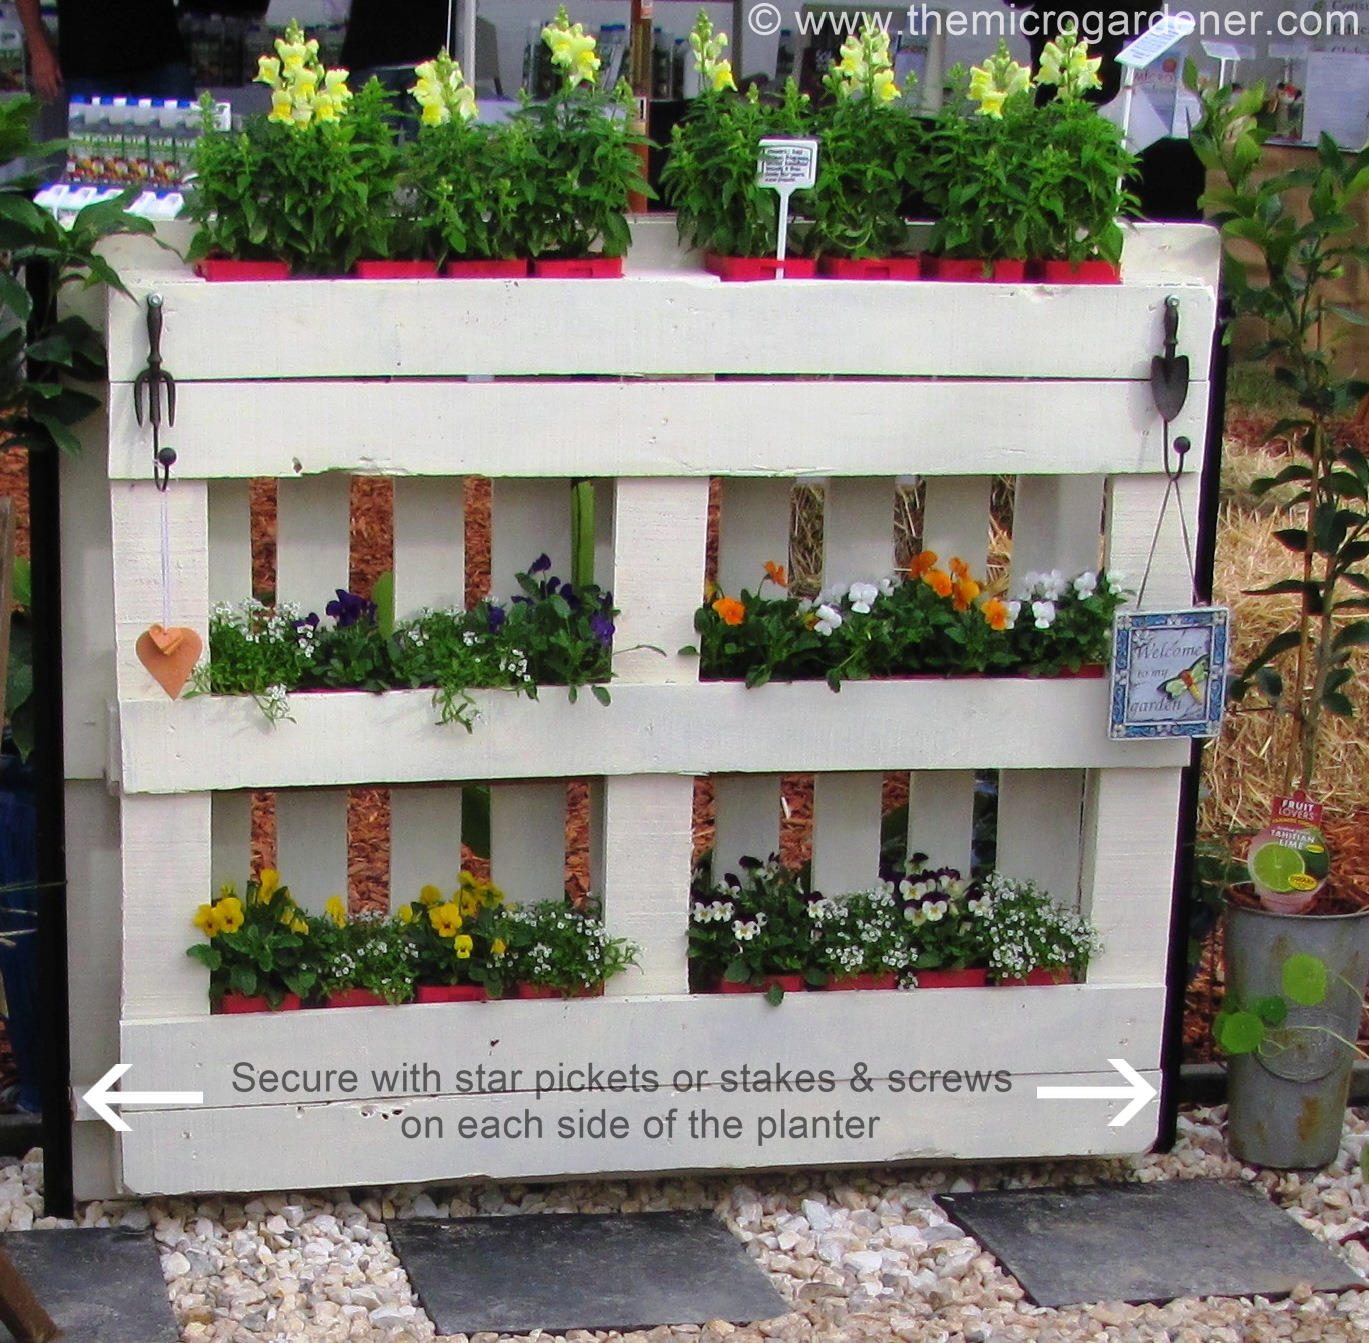 Diy Flower Gardening Ideas And Planter Projects: DIY Pallet Planter